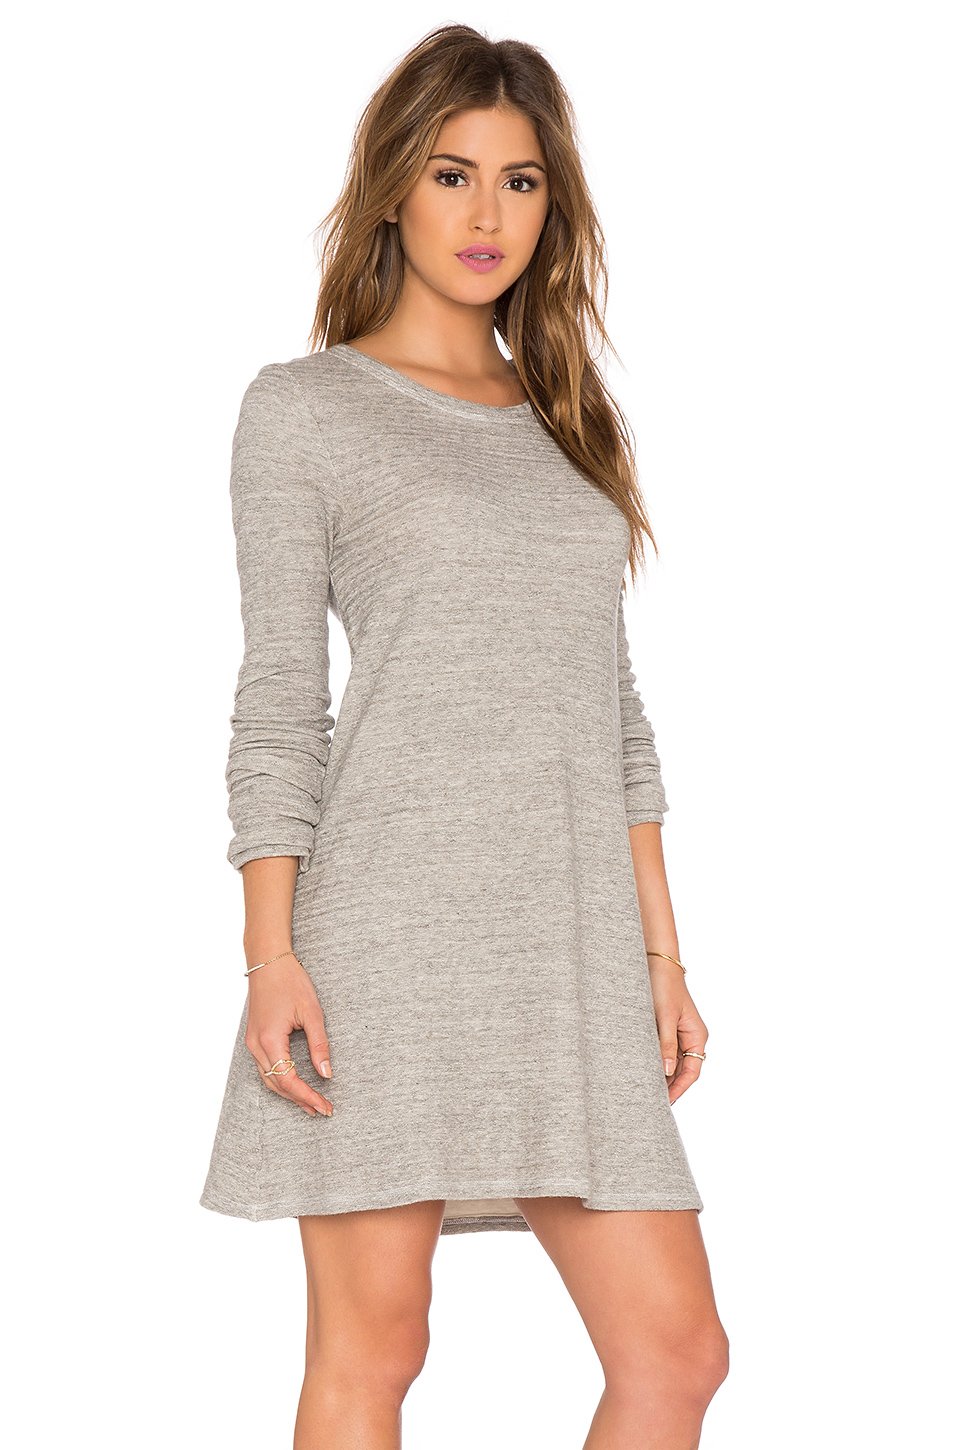 Cp shades mercedes sweater tunic dress in gray lyst for Mercedes benz sweater